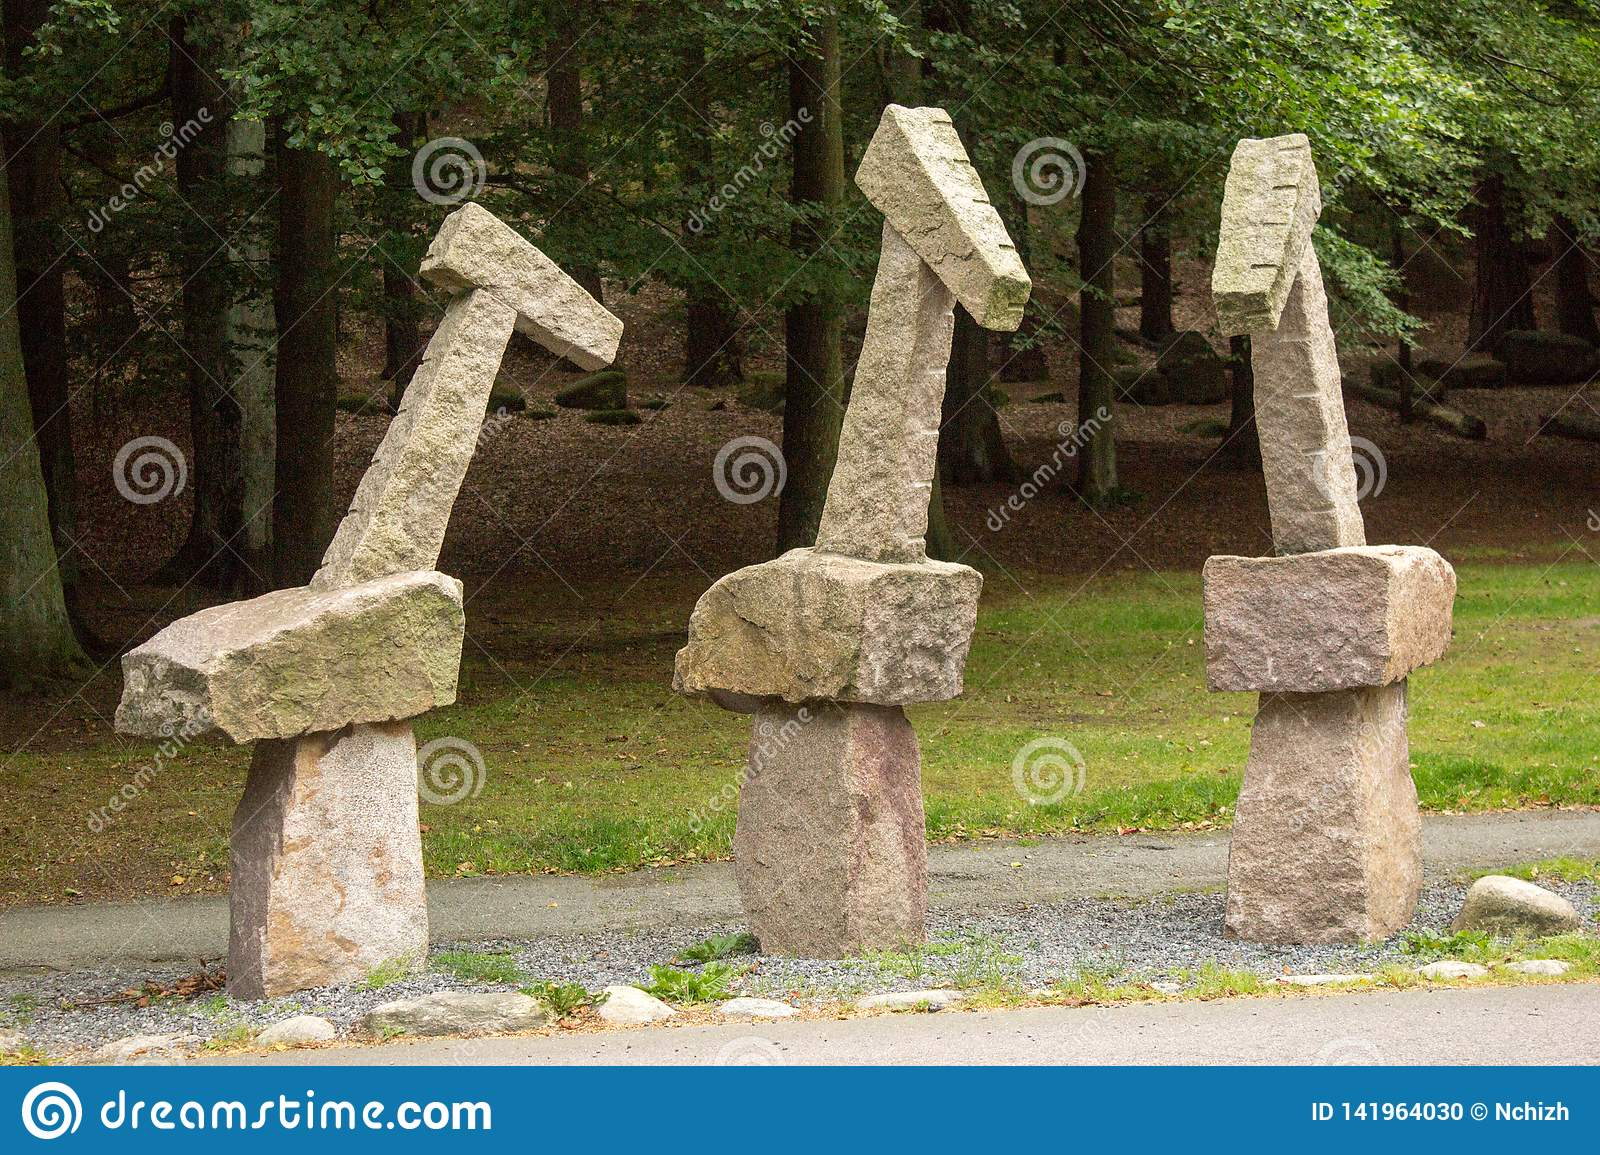 Sculptures in the Keillers Park, Gothenburg. `Three Graces` Per Agelii